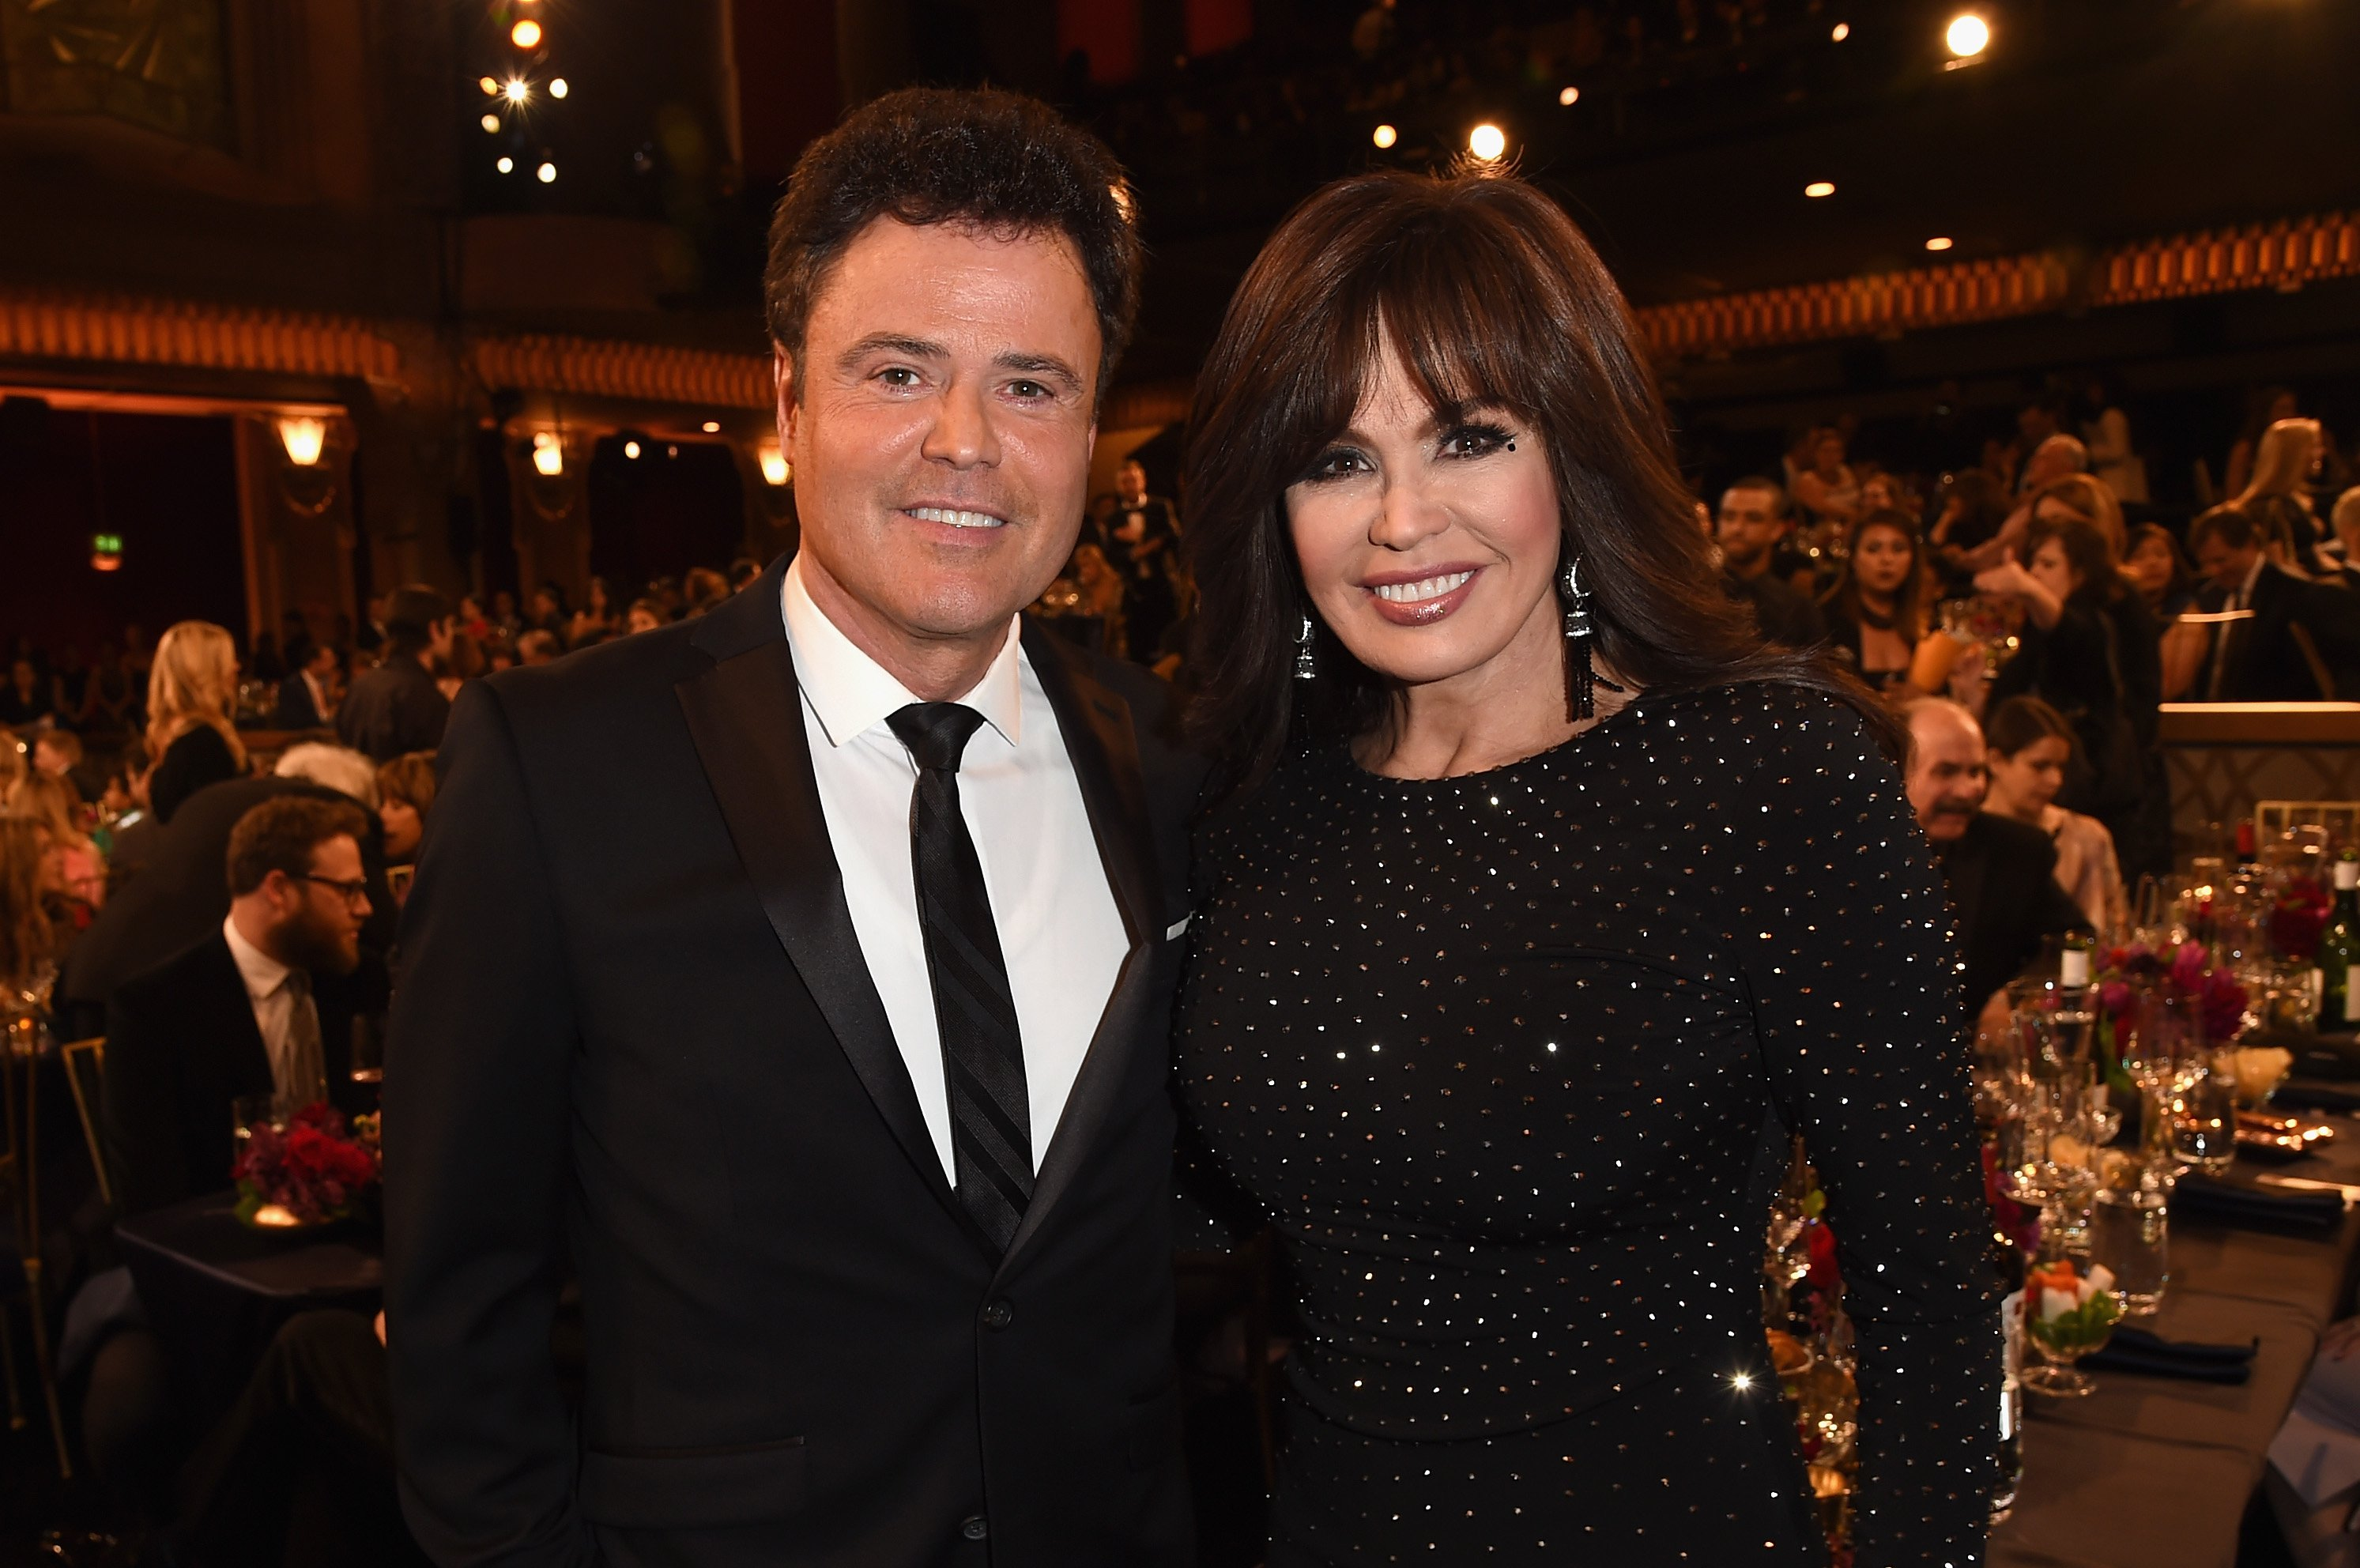 Donny and Marie Osmond attend the TV Land Awards in Beverly Hills, California on April 11, 2015 | Photo: Getty Images